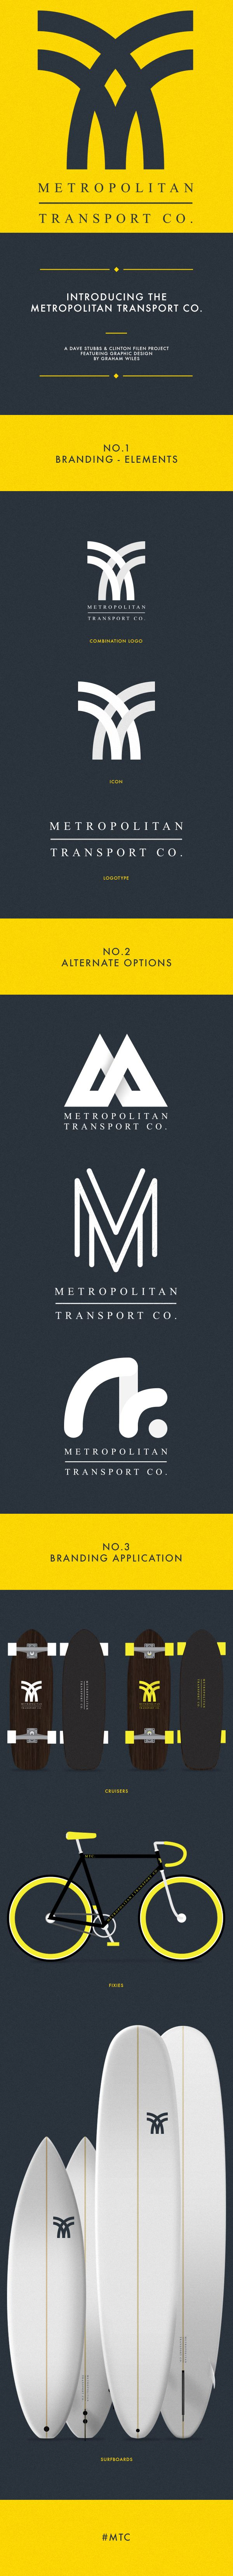 METROPOLITAN TRANSPORT CO. on Behance